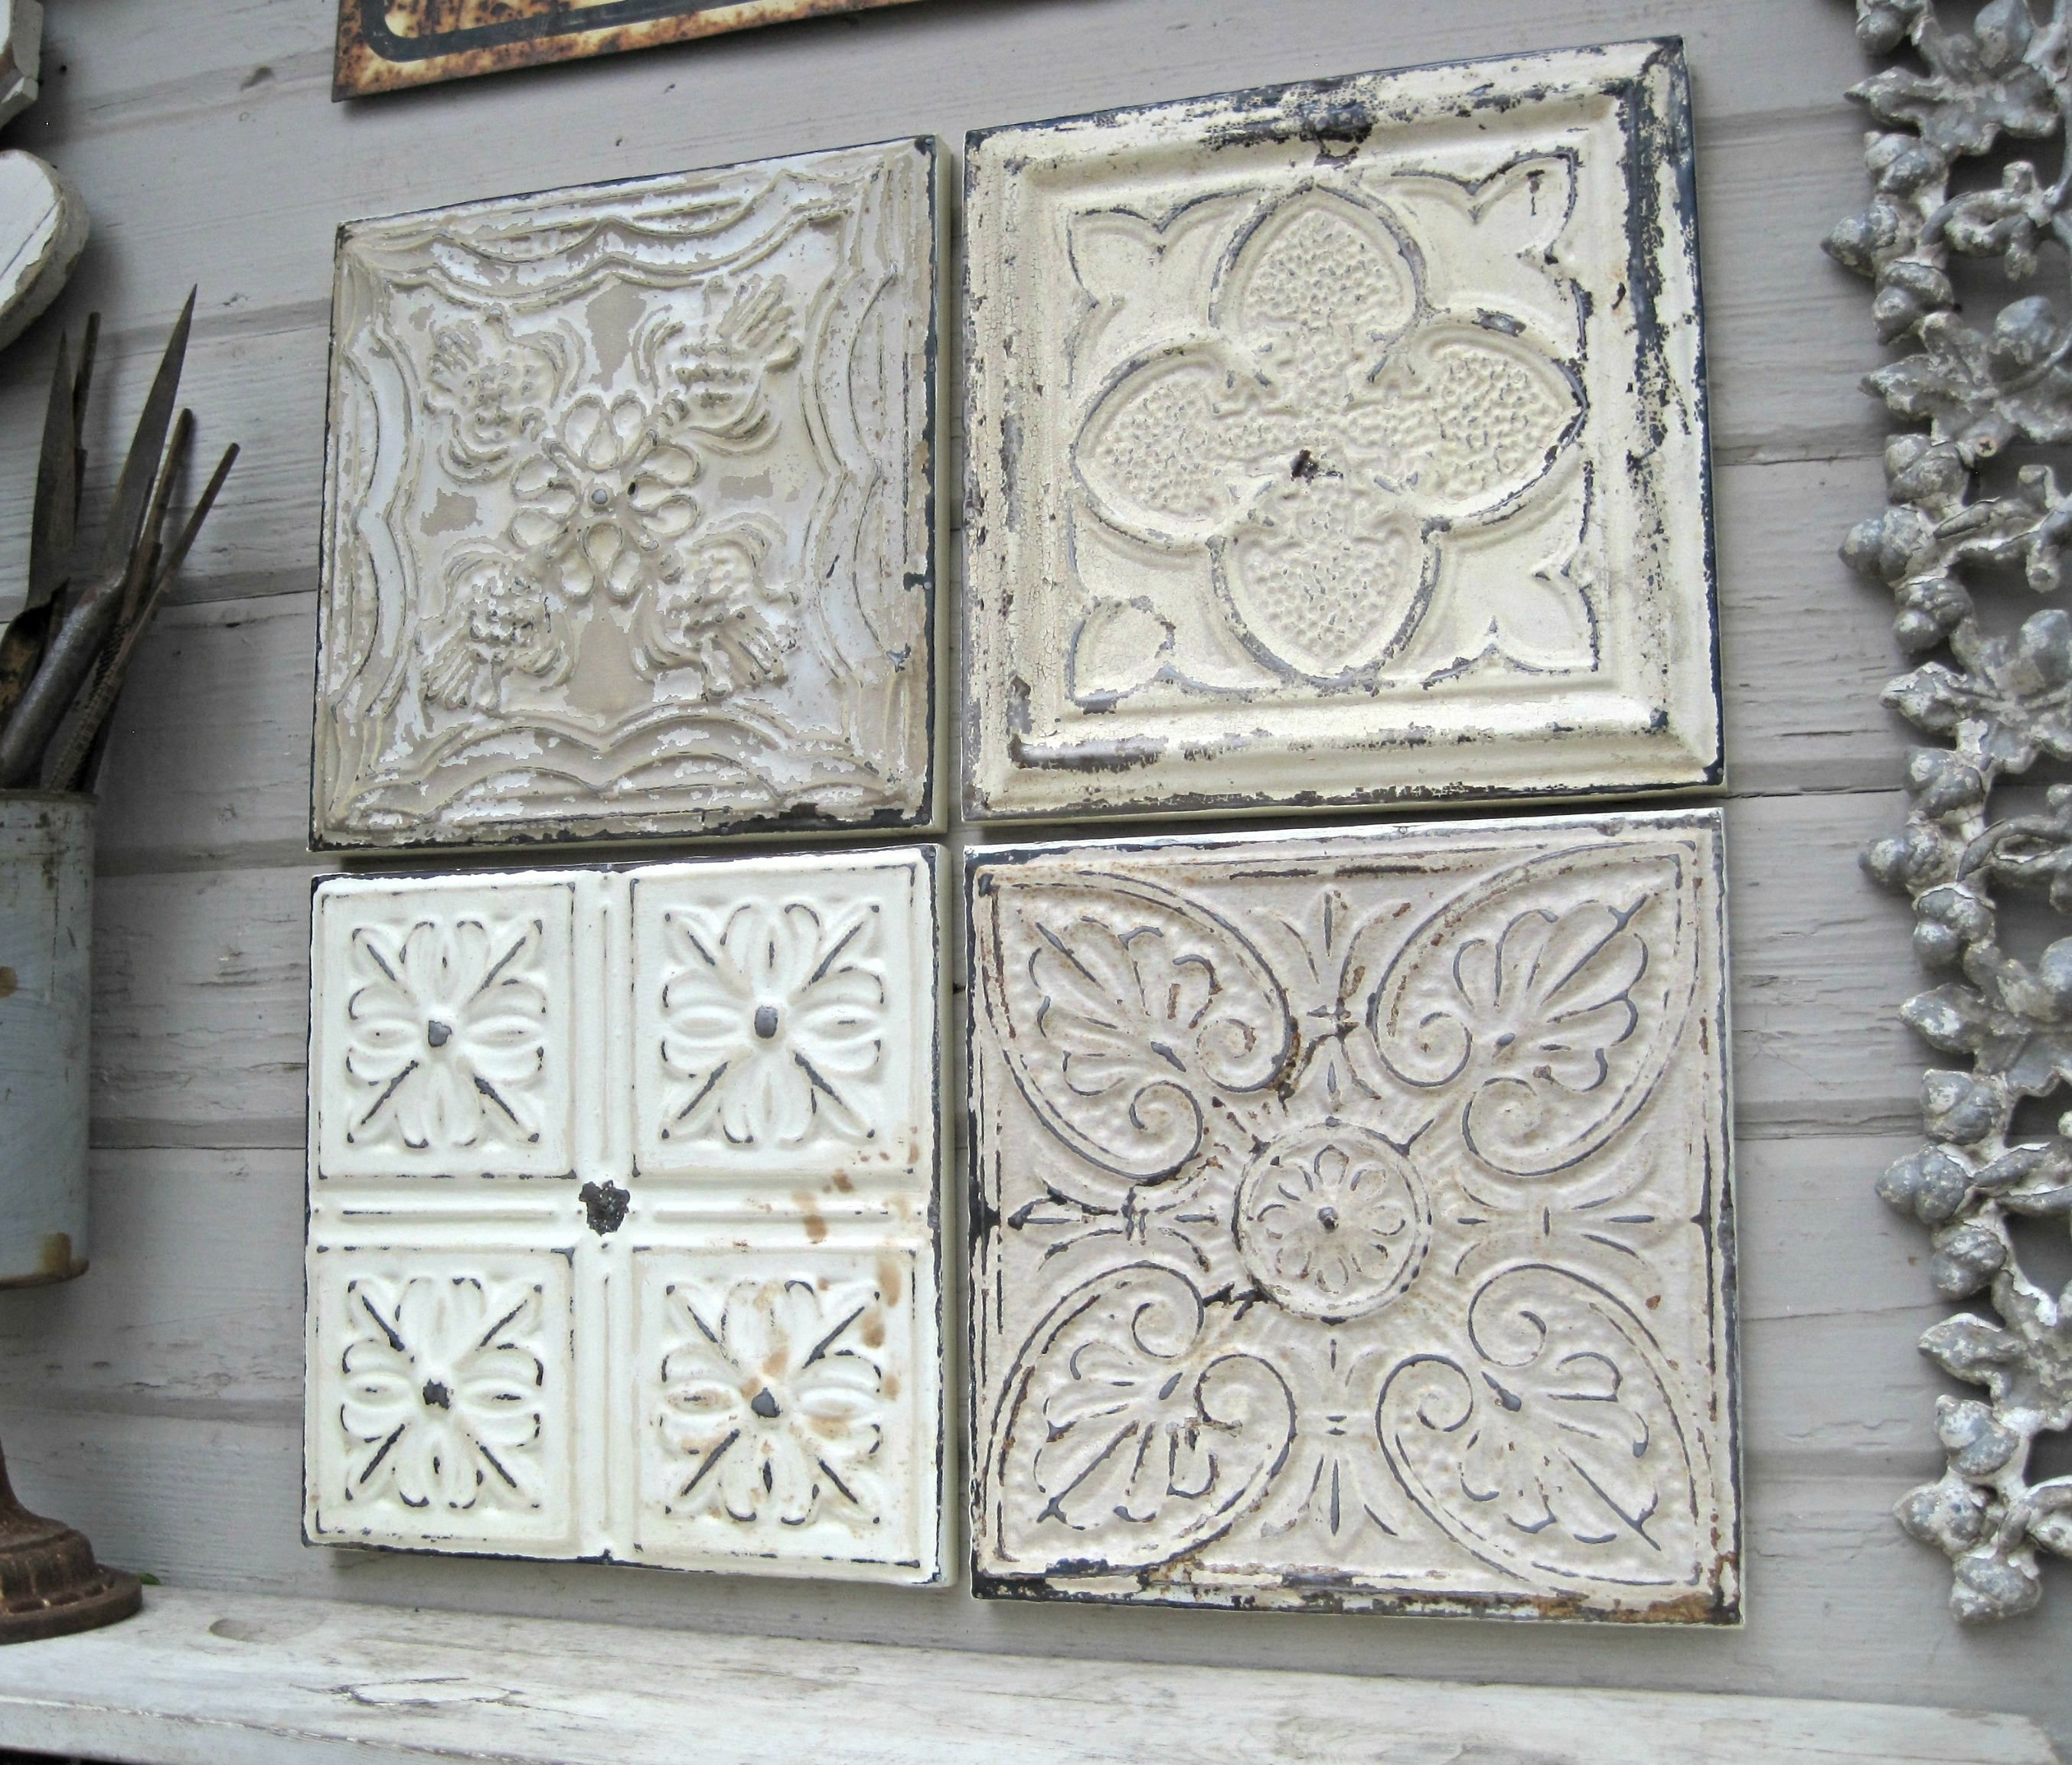 Rustic Wall Decor, Antique Architectural Salvage, 4 Framed Ceiling Within Most Up To Date Tin Wall Art (View 13 of 20)